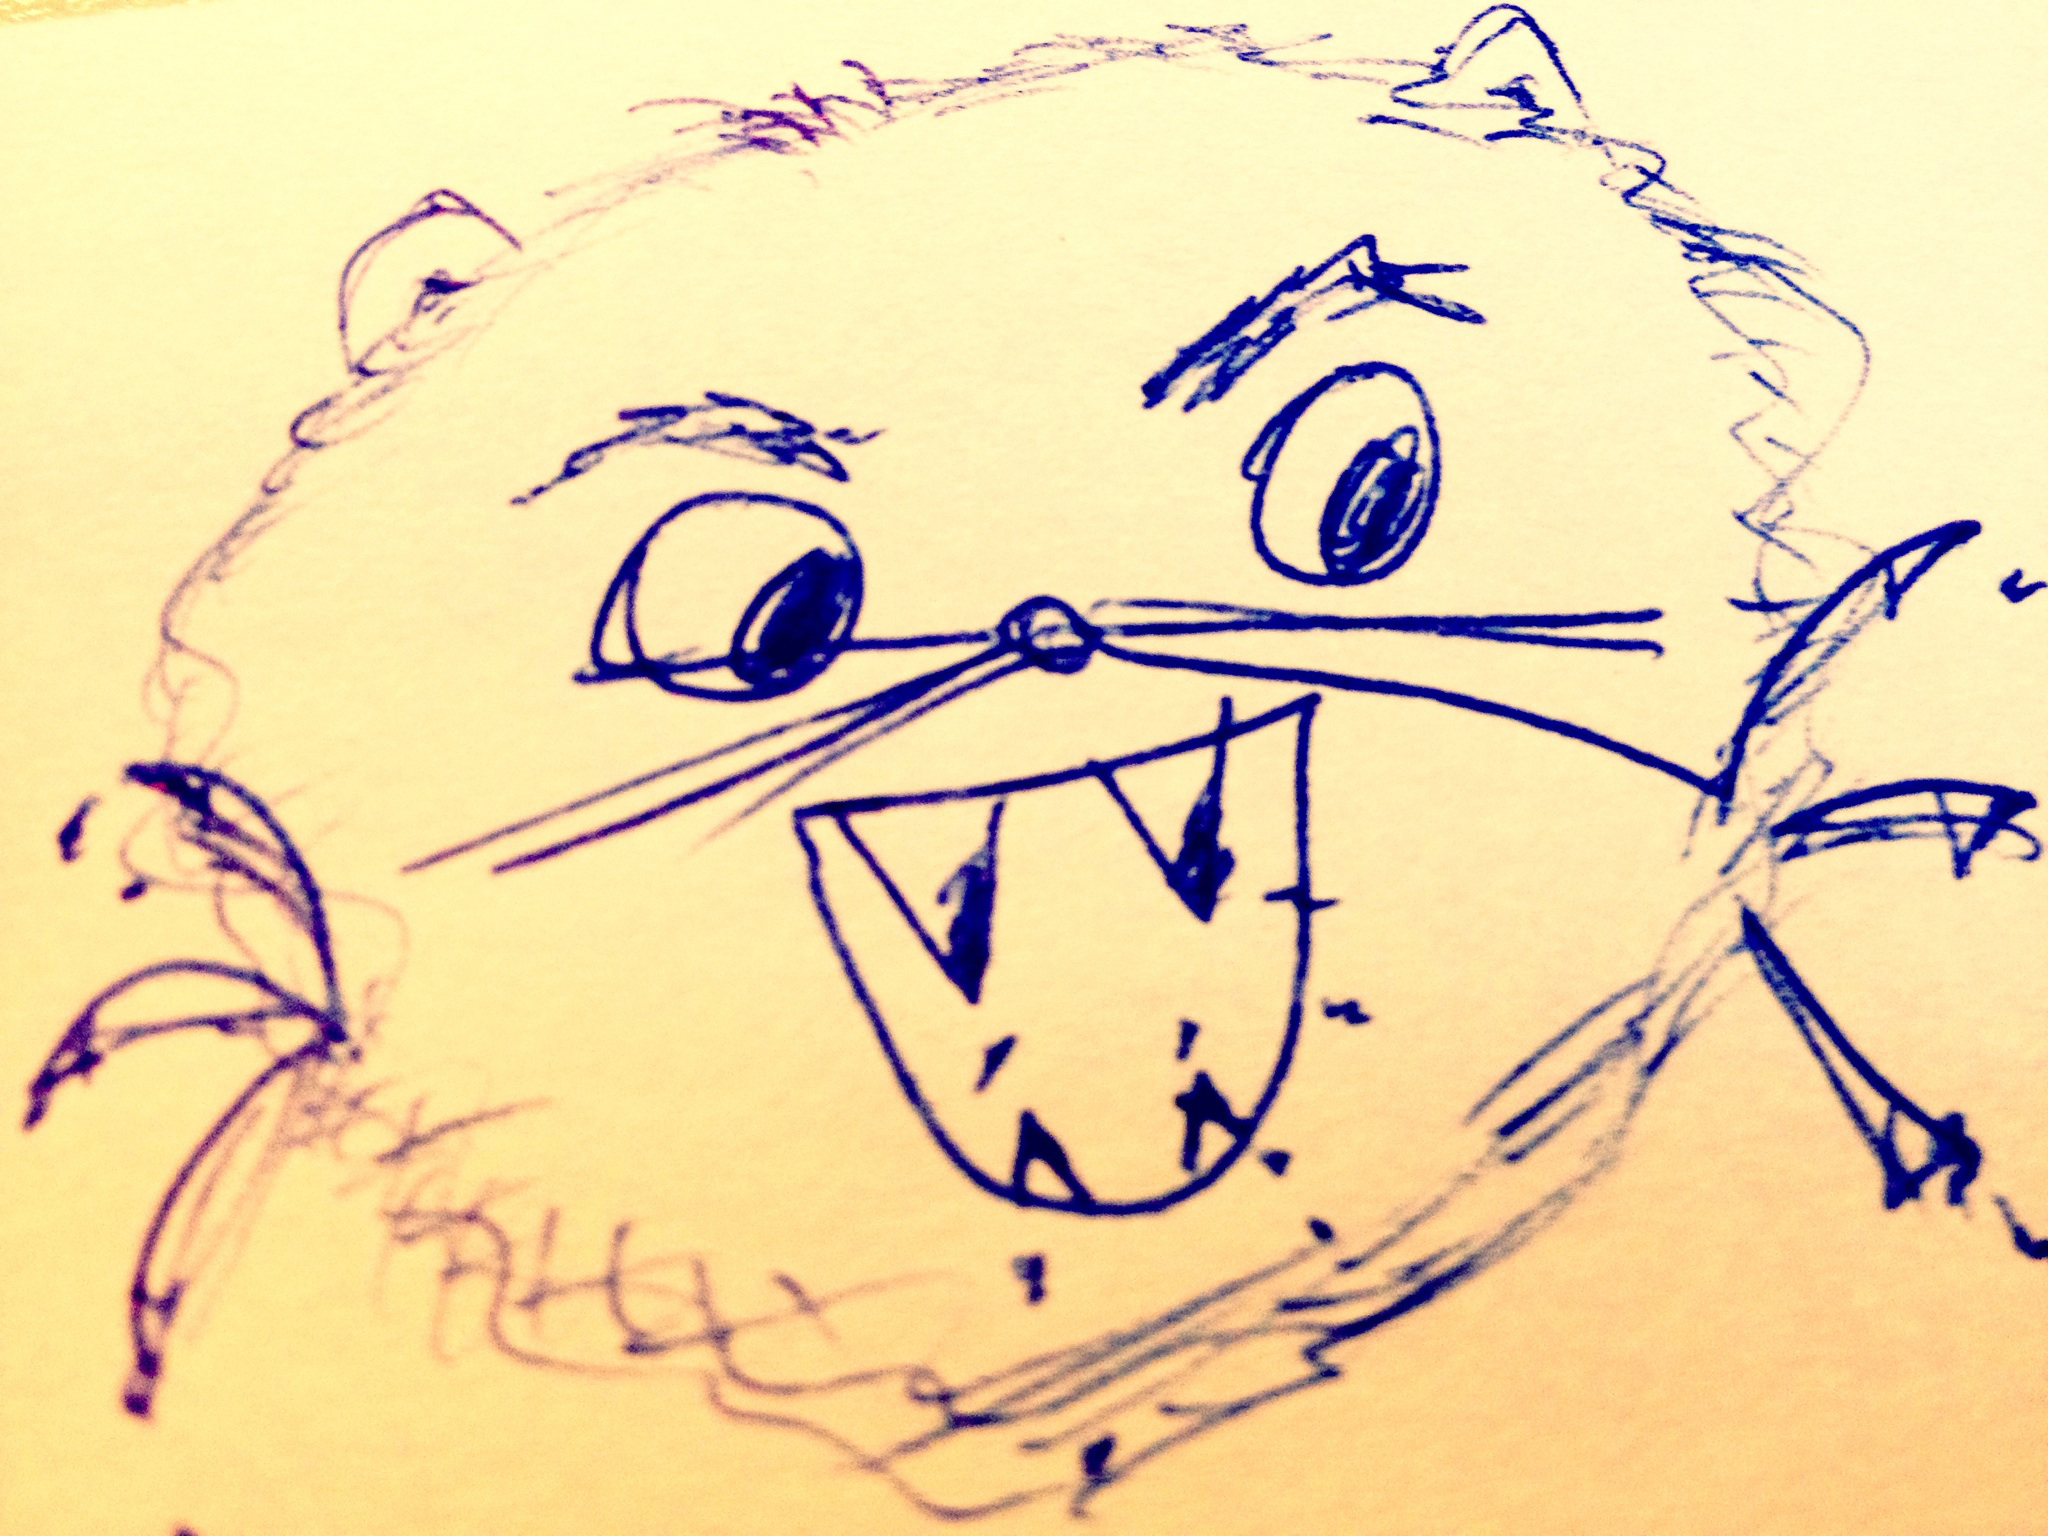 Crudely drawn mouse